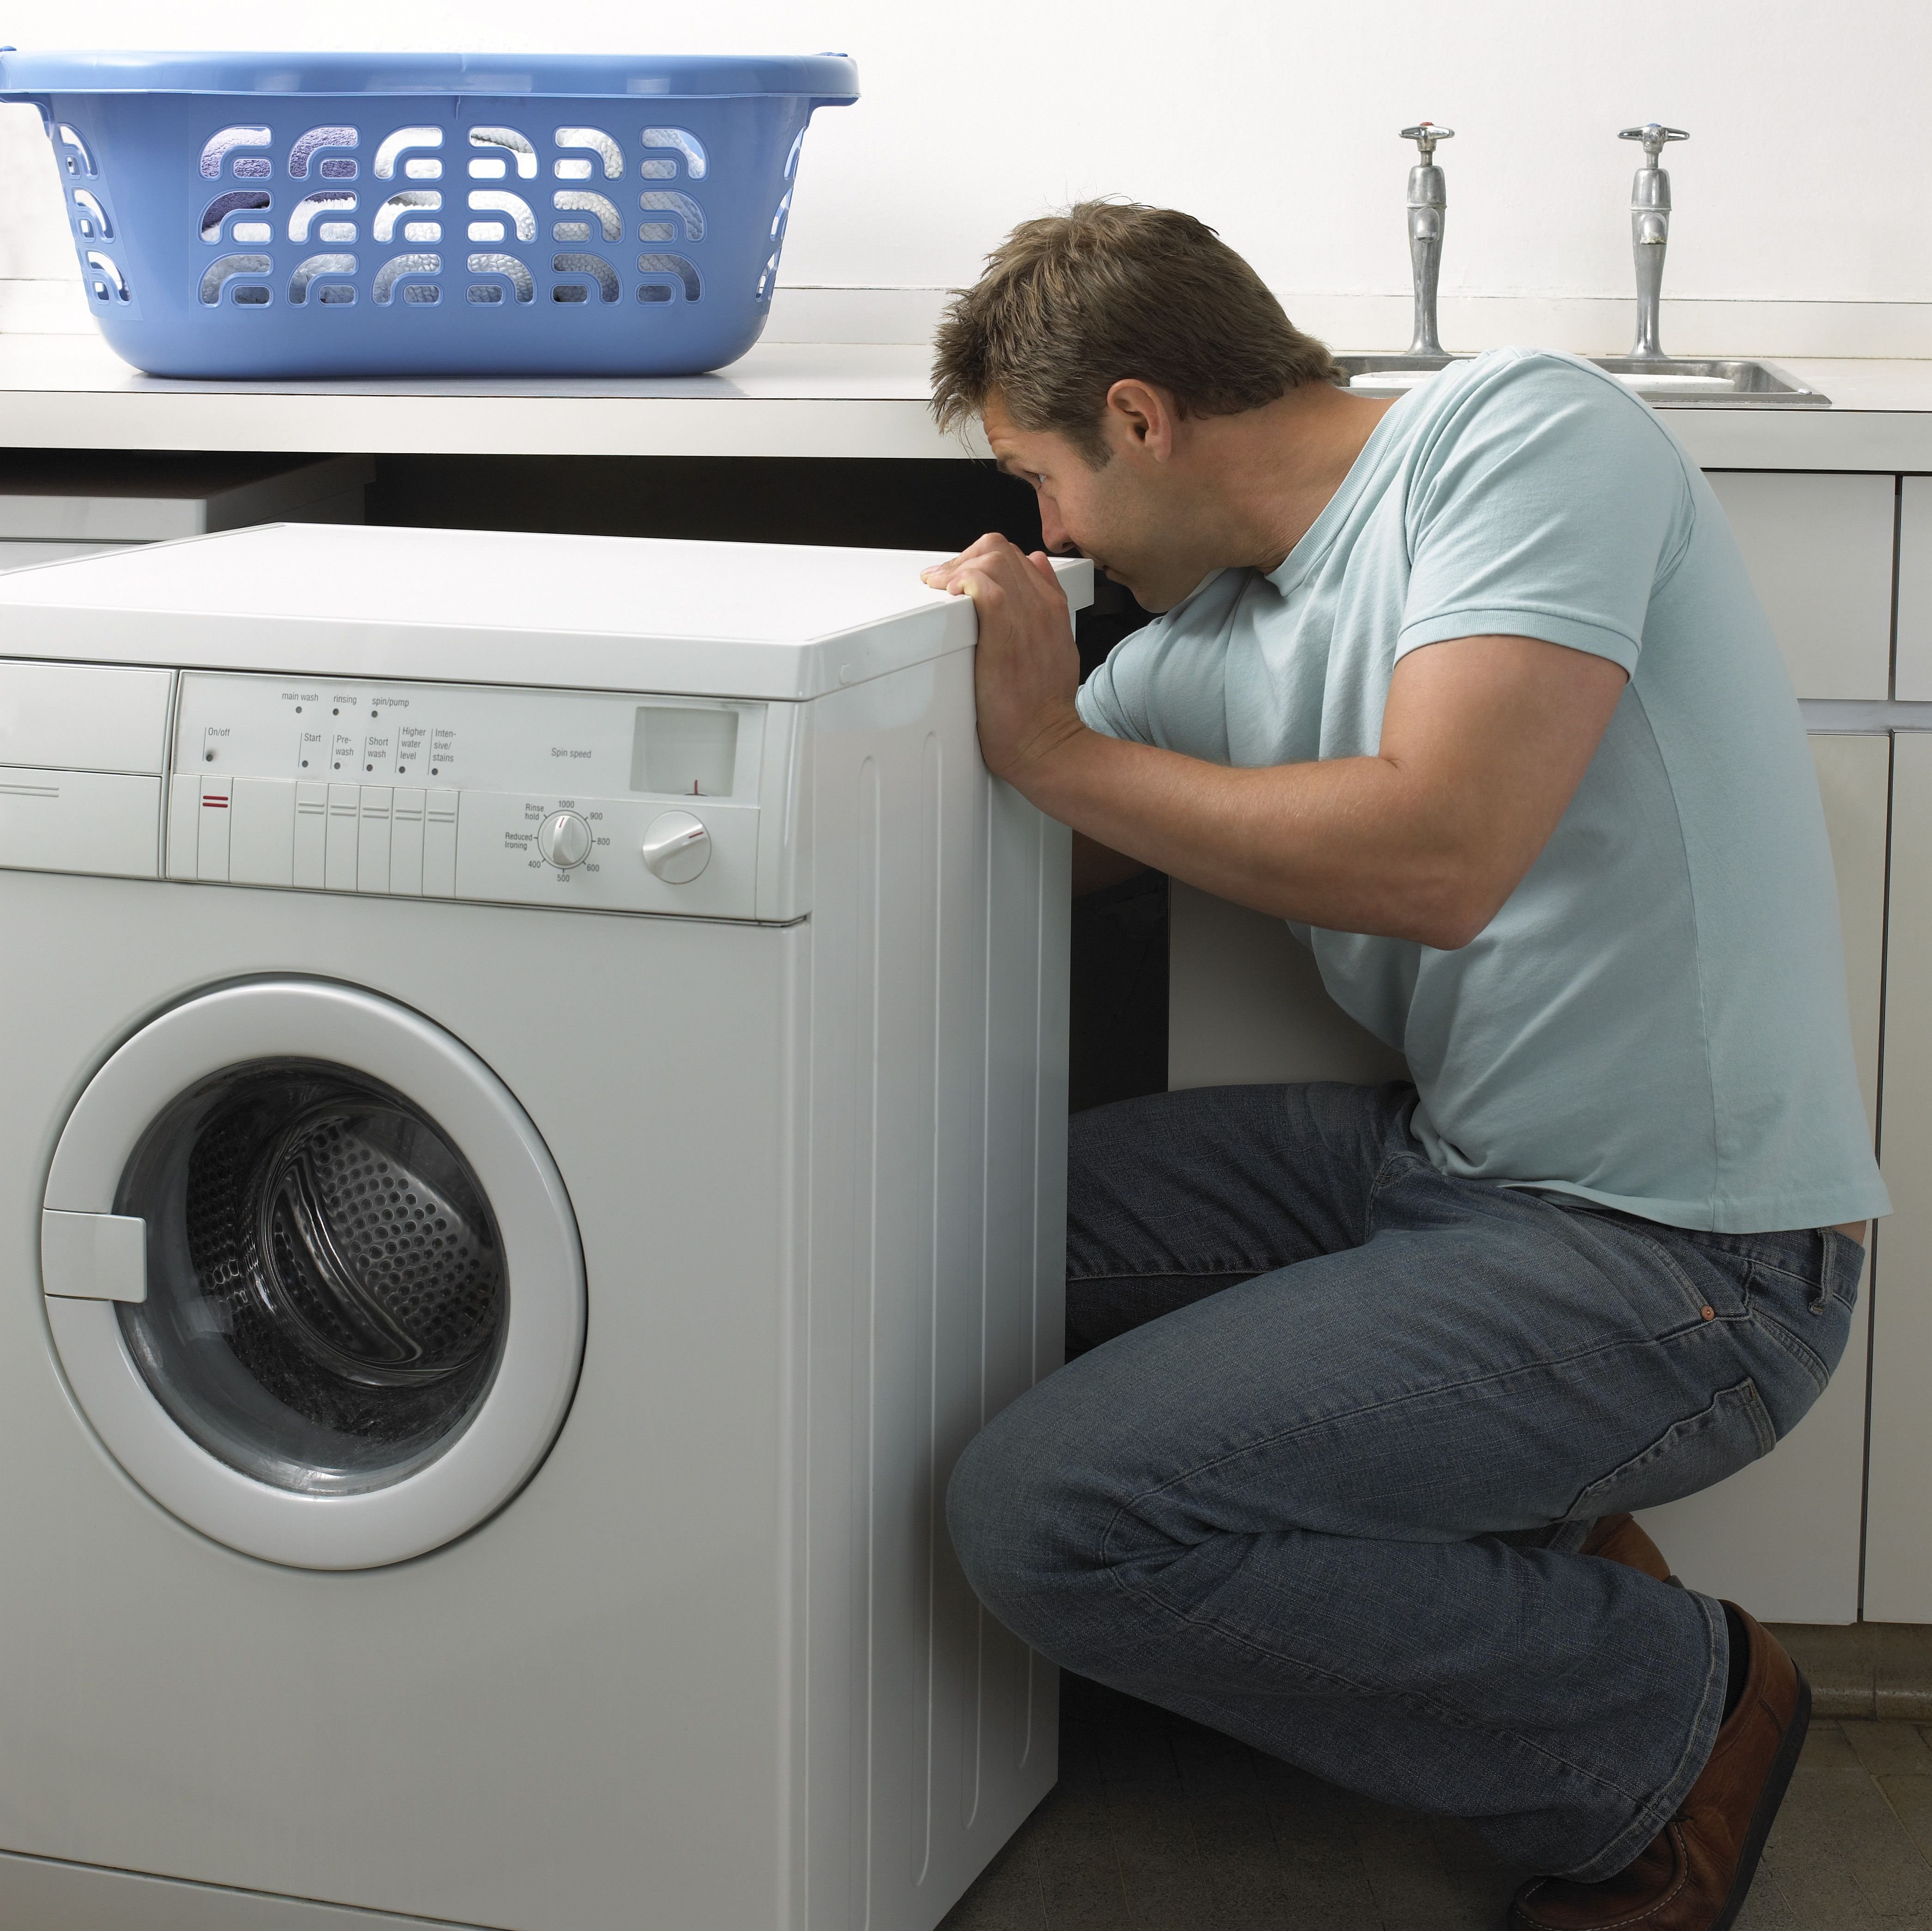 Washing Machine In Kitchen Design: How To Level A Washer That Vibrates And Walks